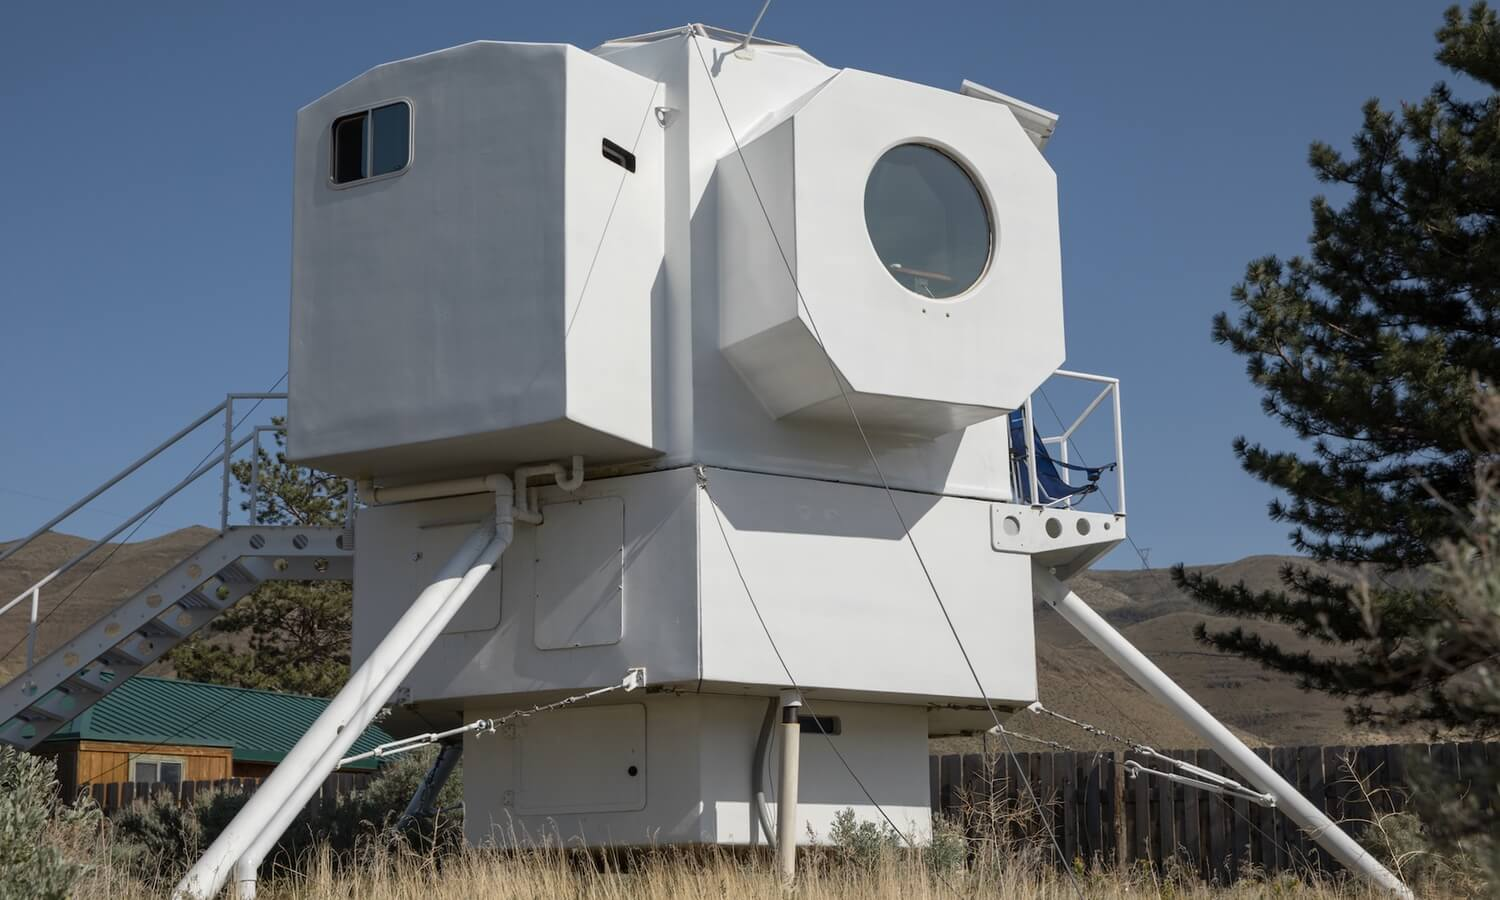 The lunar lander can be turned with a howl the house, and that was done